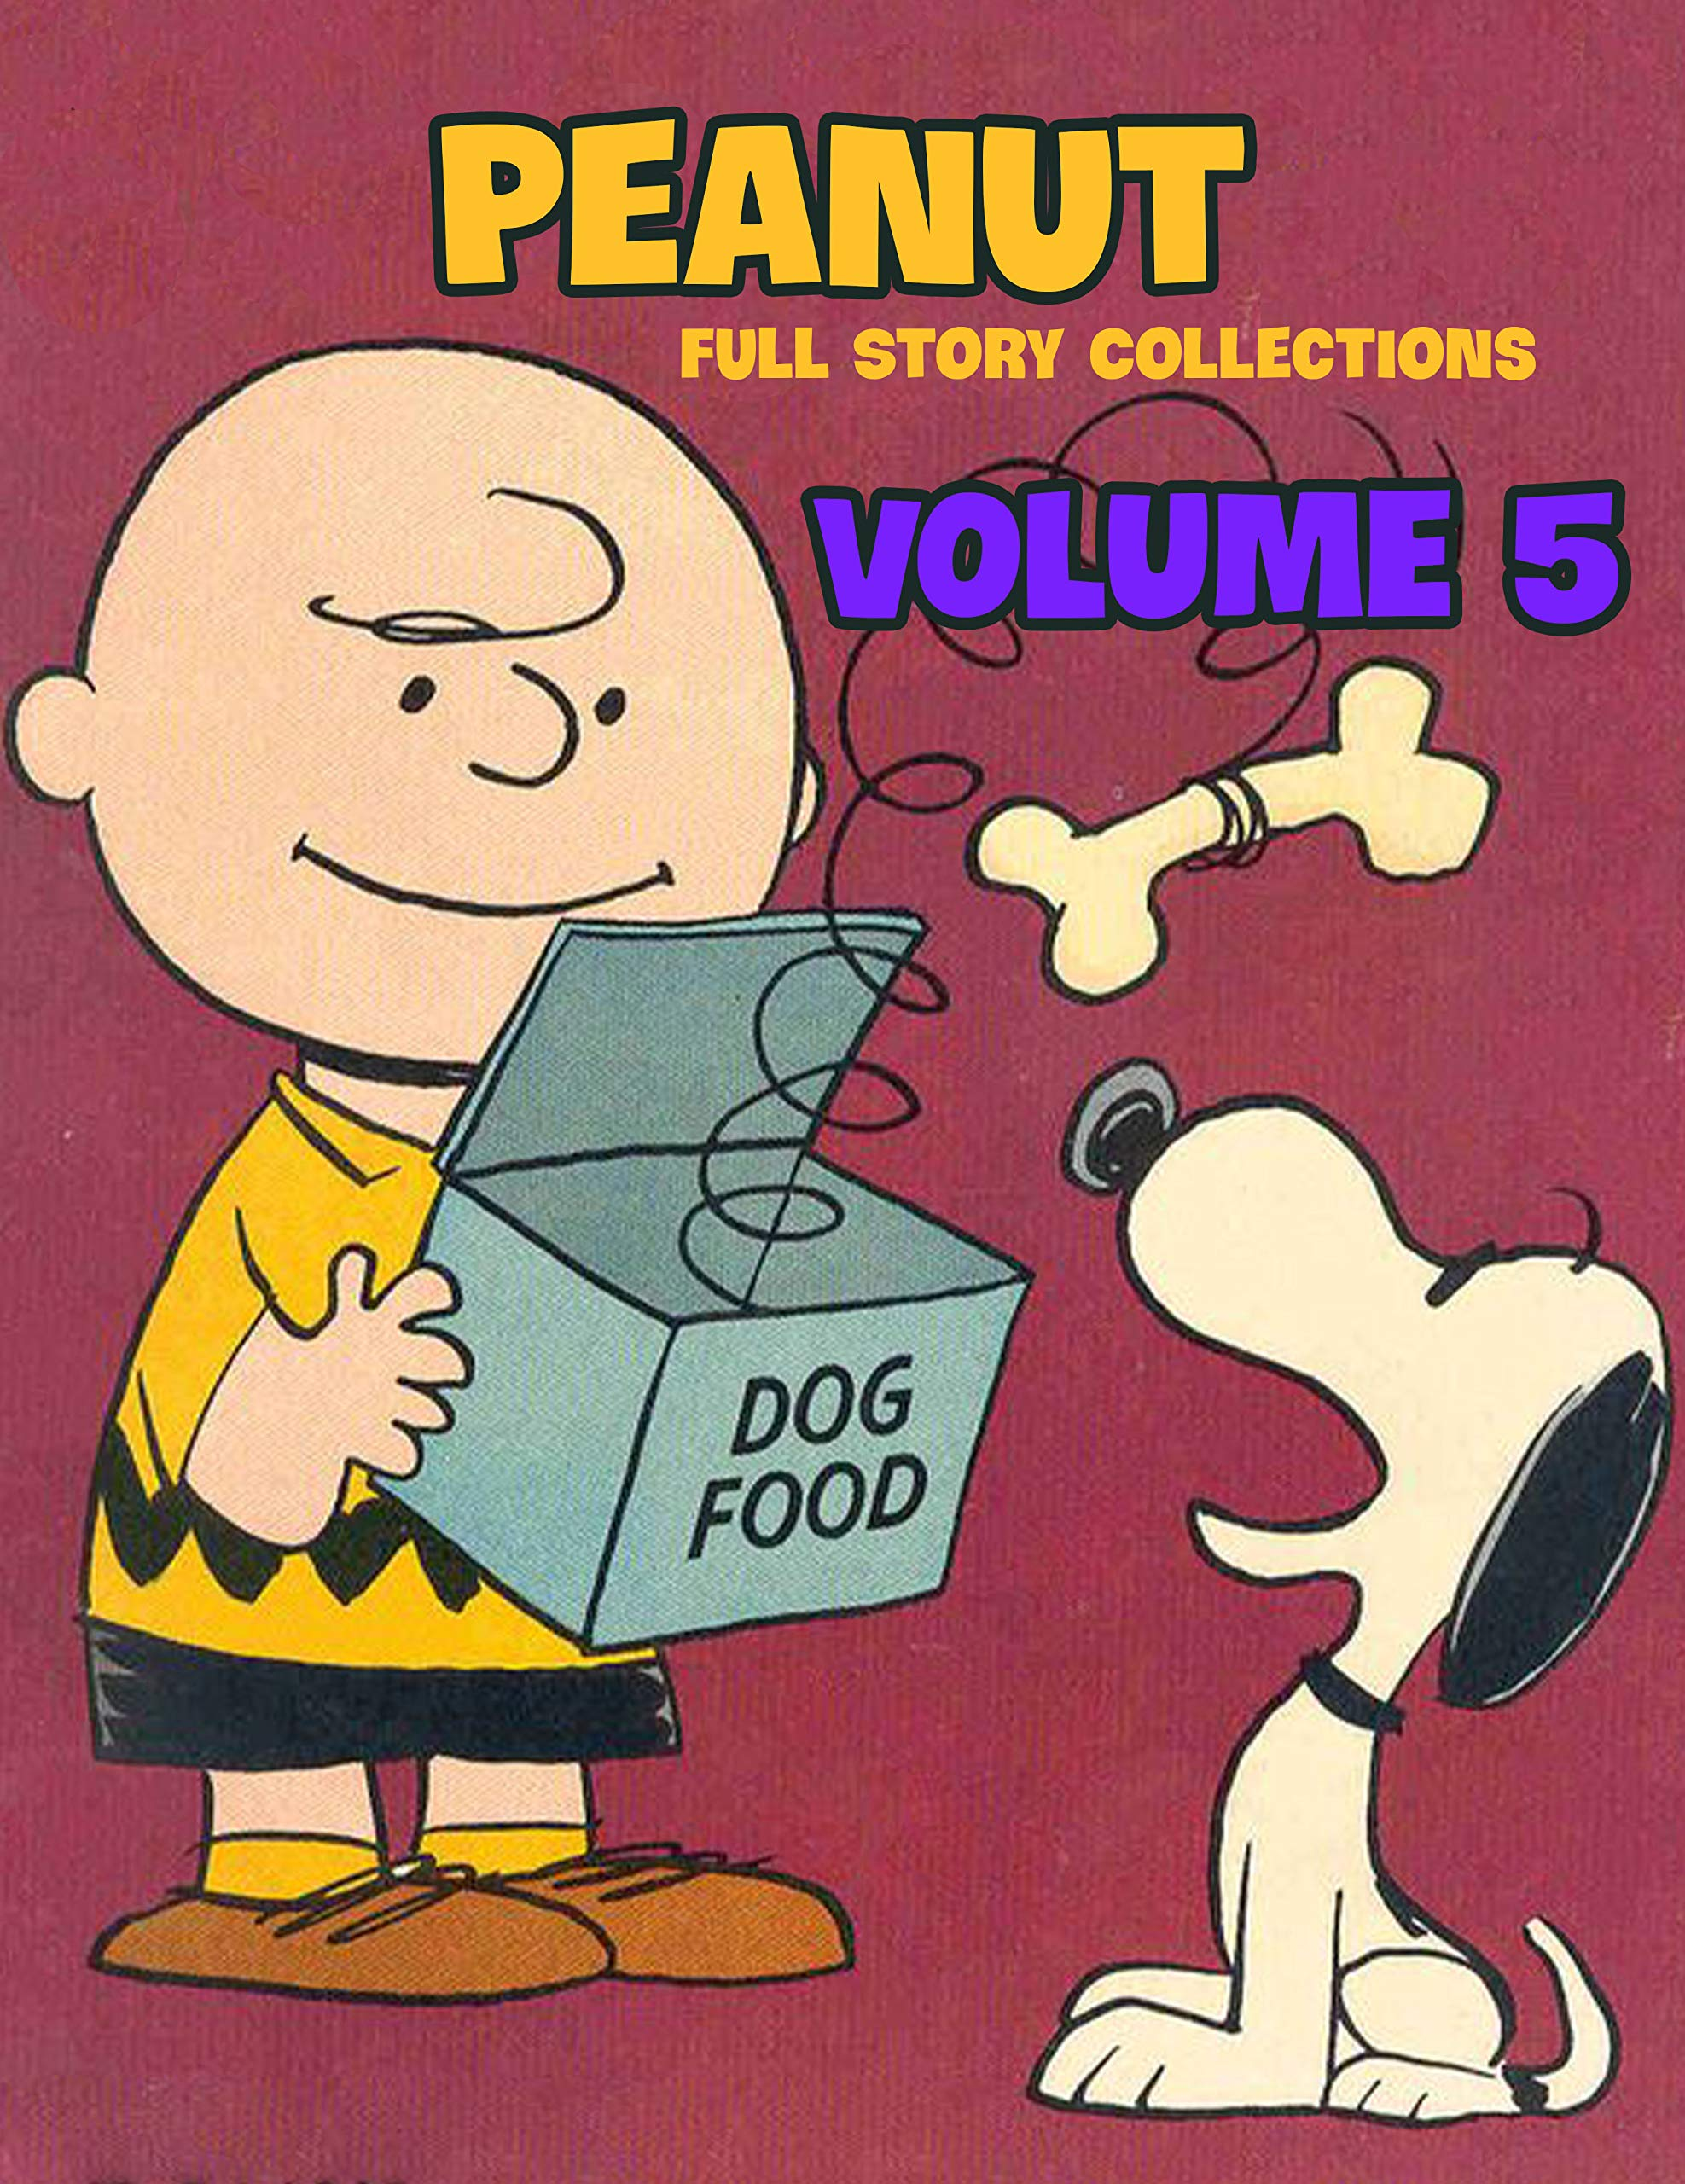 Full Story Peanut Collection Vol 5: Full Book of Peanuts Limited Edition Vol 5